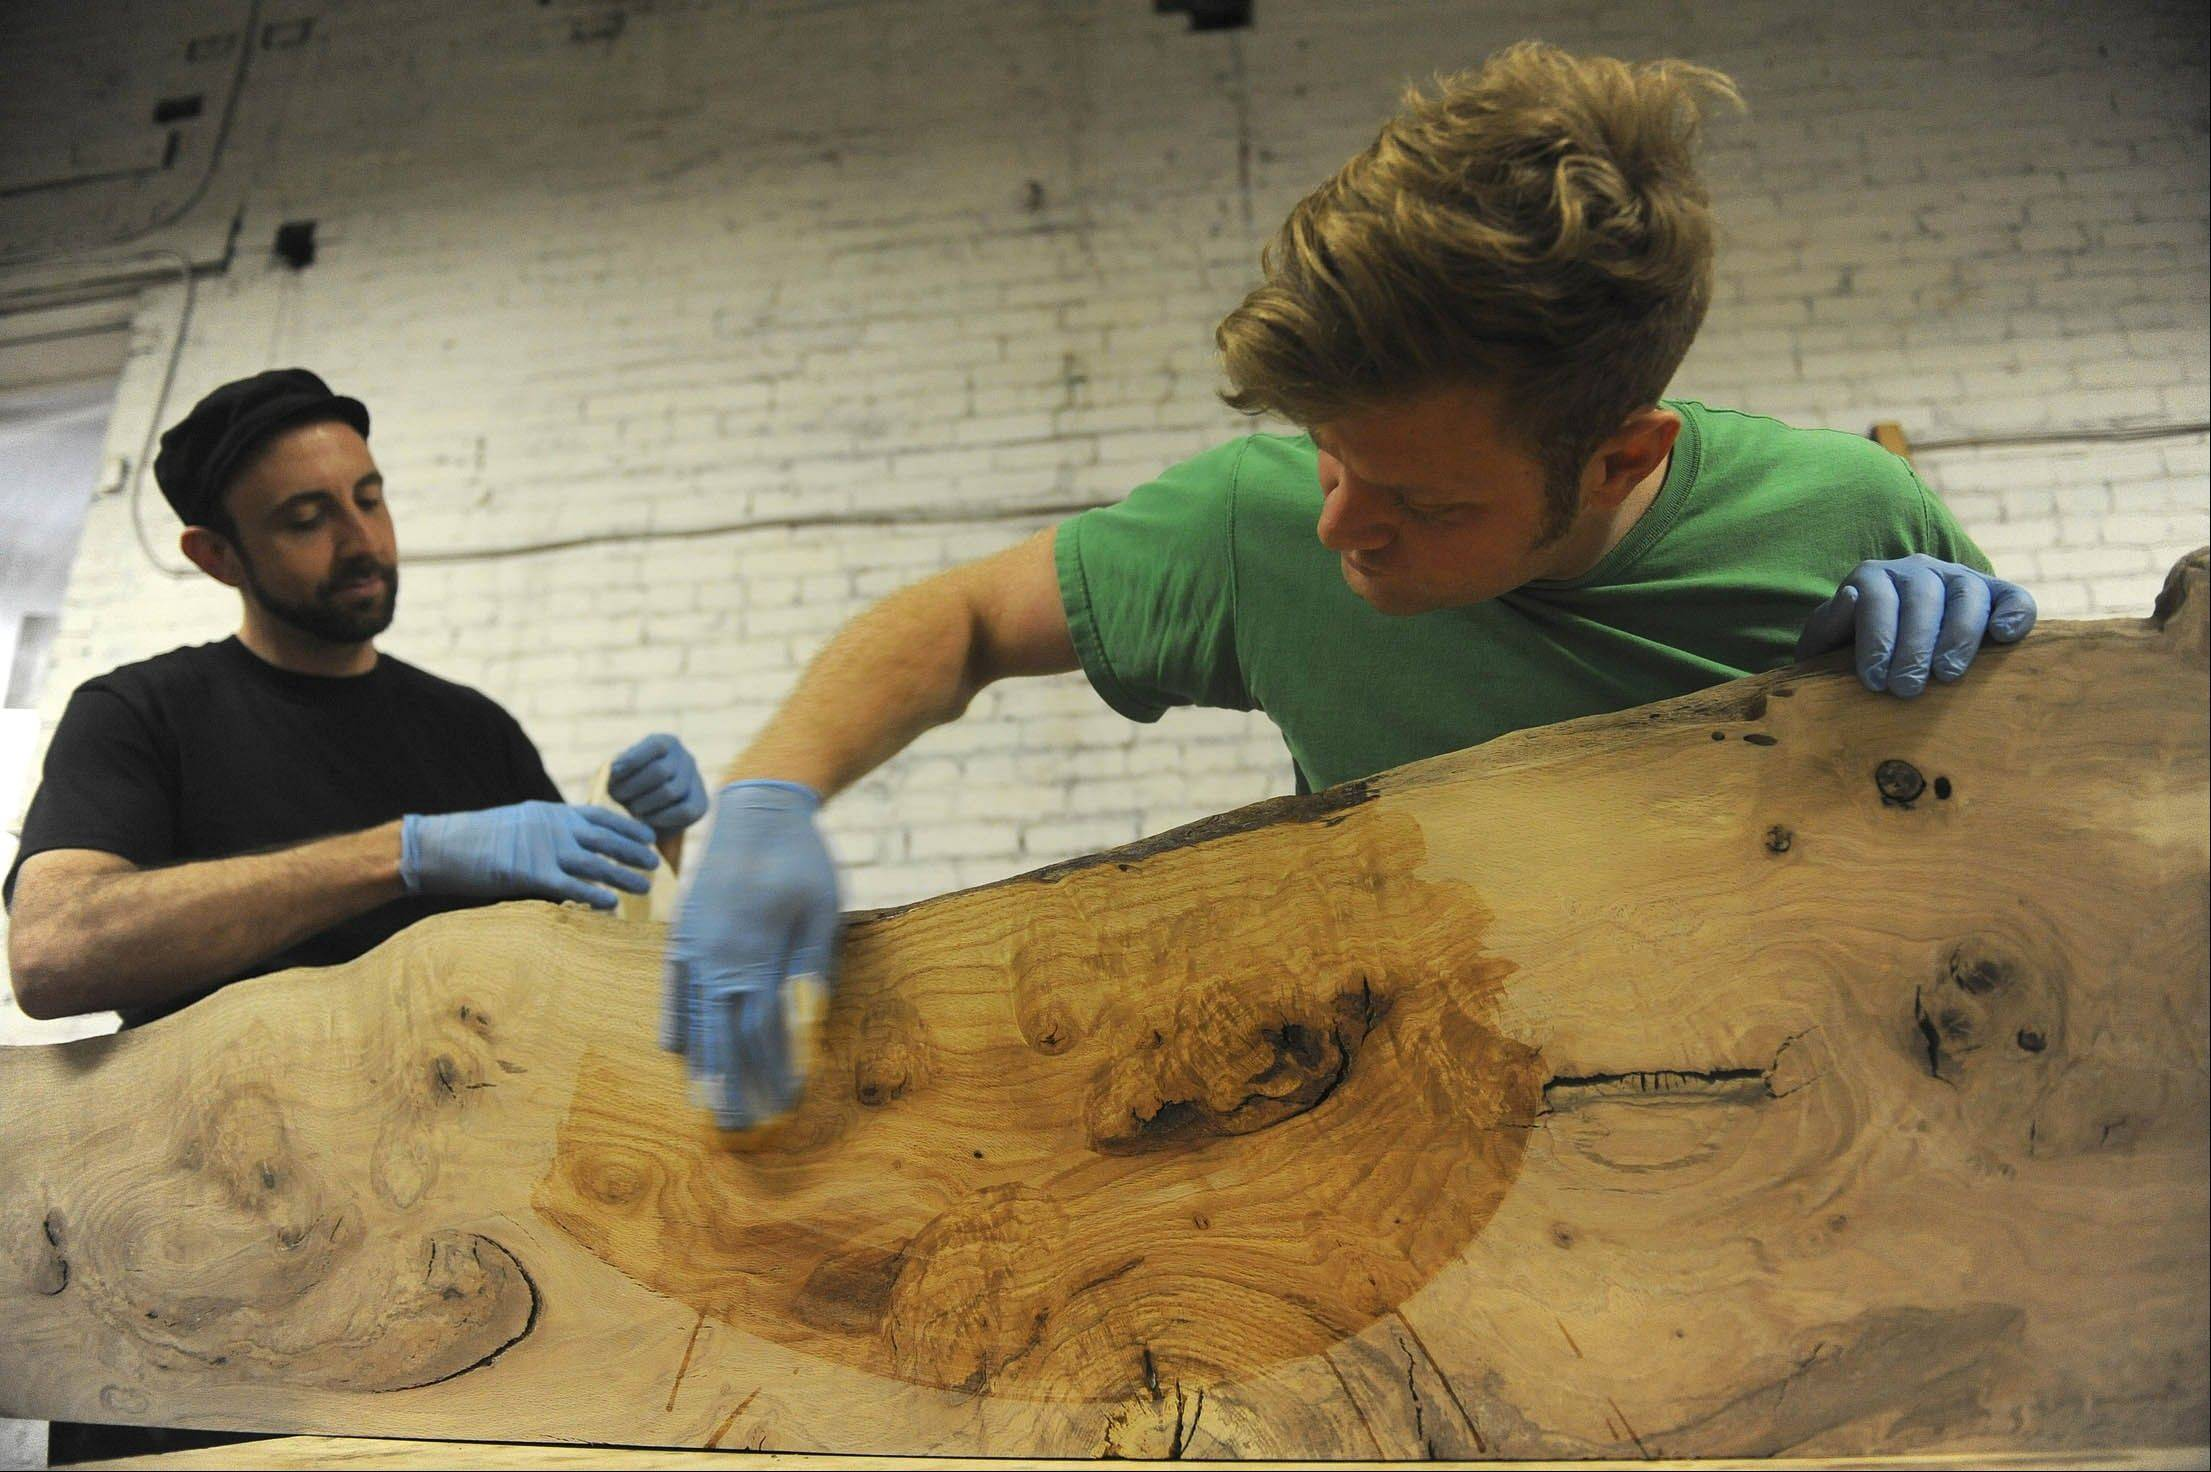 SH13E141RECLAIMEDWOOD May 20, 2013 -- Apprentice Brian McLeod, left, works with Jason Boone of Urban Tree to apply tongue oil to a 12-foot shelf made from pin oak at the wood shop. (SHNS photo by Rebecca Droke / Pittsburgh Post-Gazette) (Newscom TagID: shnsphotos146677.jpg) [Photo via Newscom]